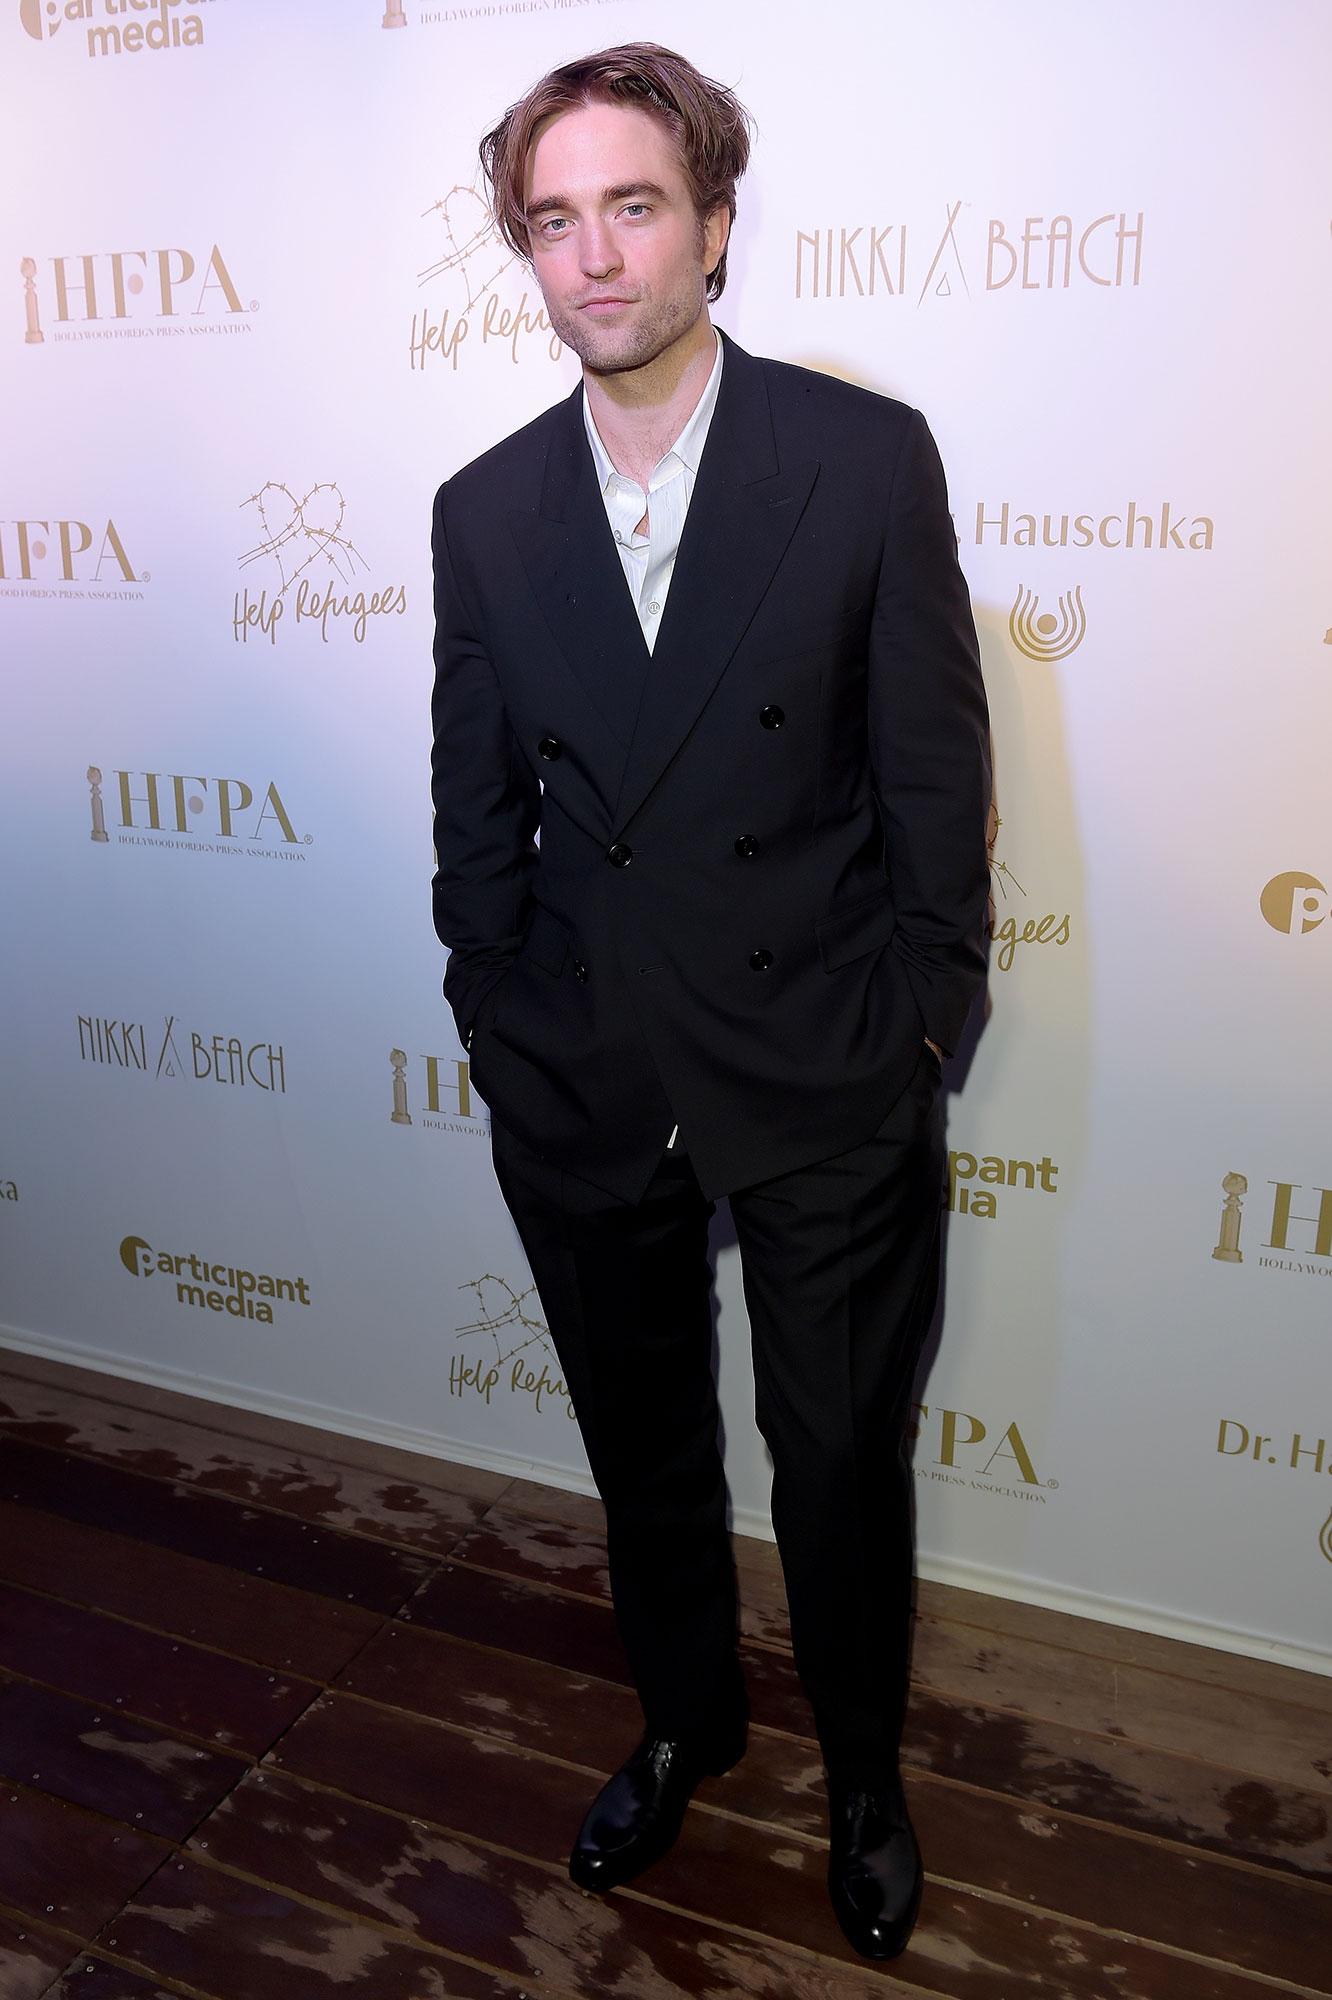 Robert Pattinson Cannes Film Festival 2019 Most Stylish Guys Red Carpet - The former Twilight star dressed down his double-breasted suit by skipping a tie at the HFPA & Participant Media Honour Help Refugees event on Sunday, May 19.